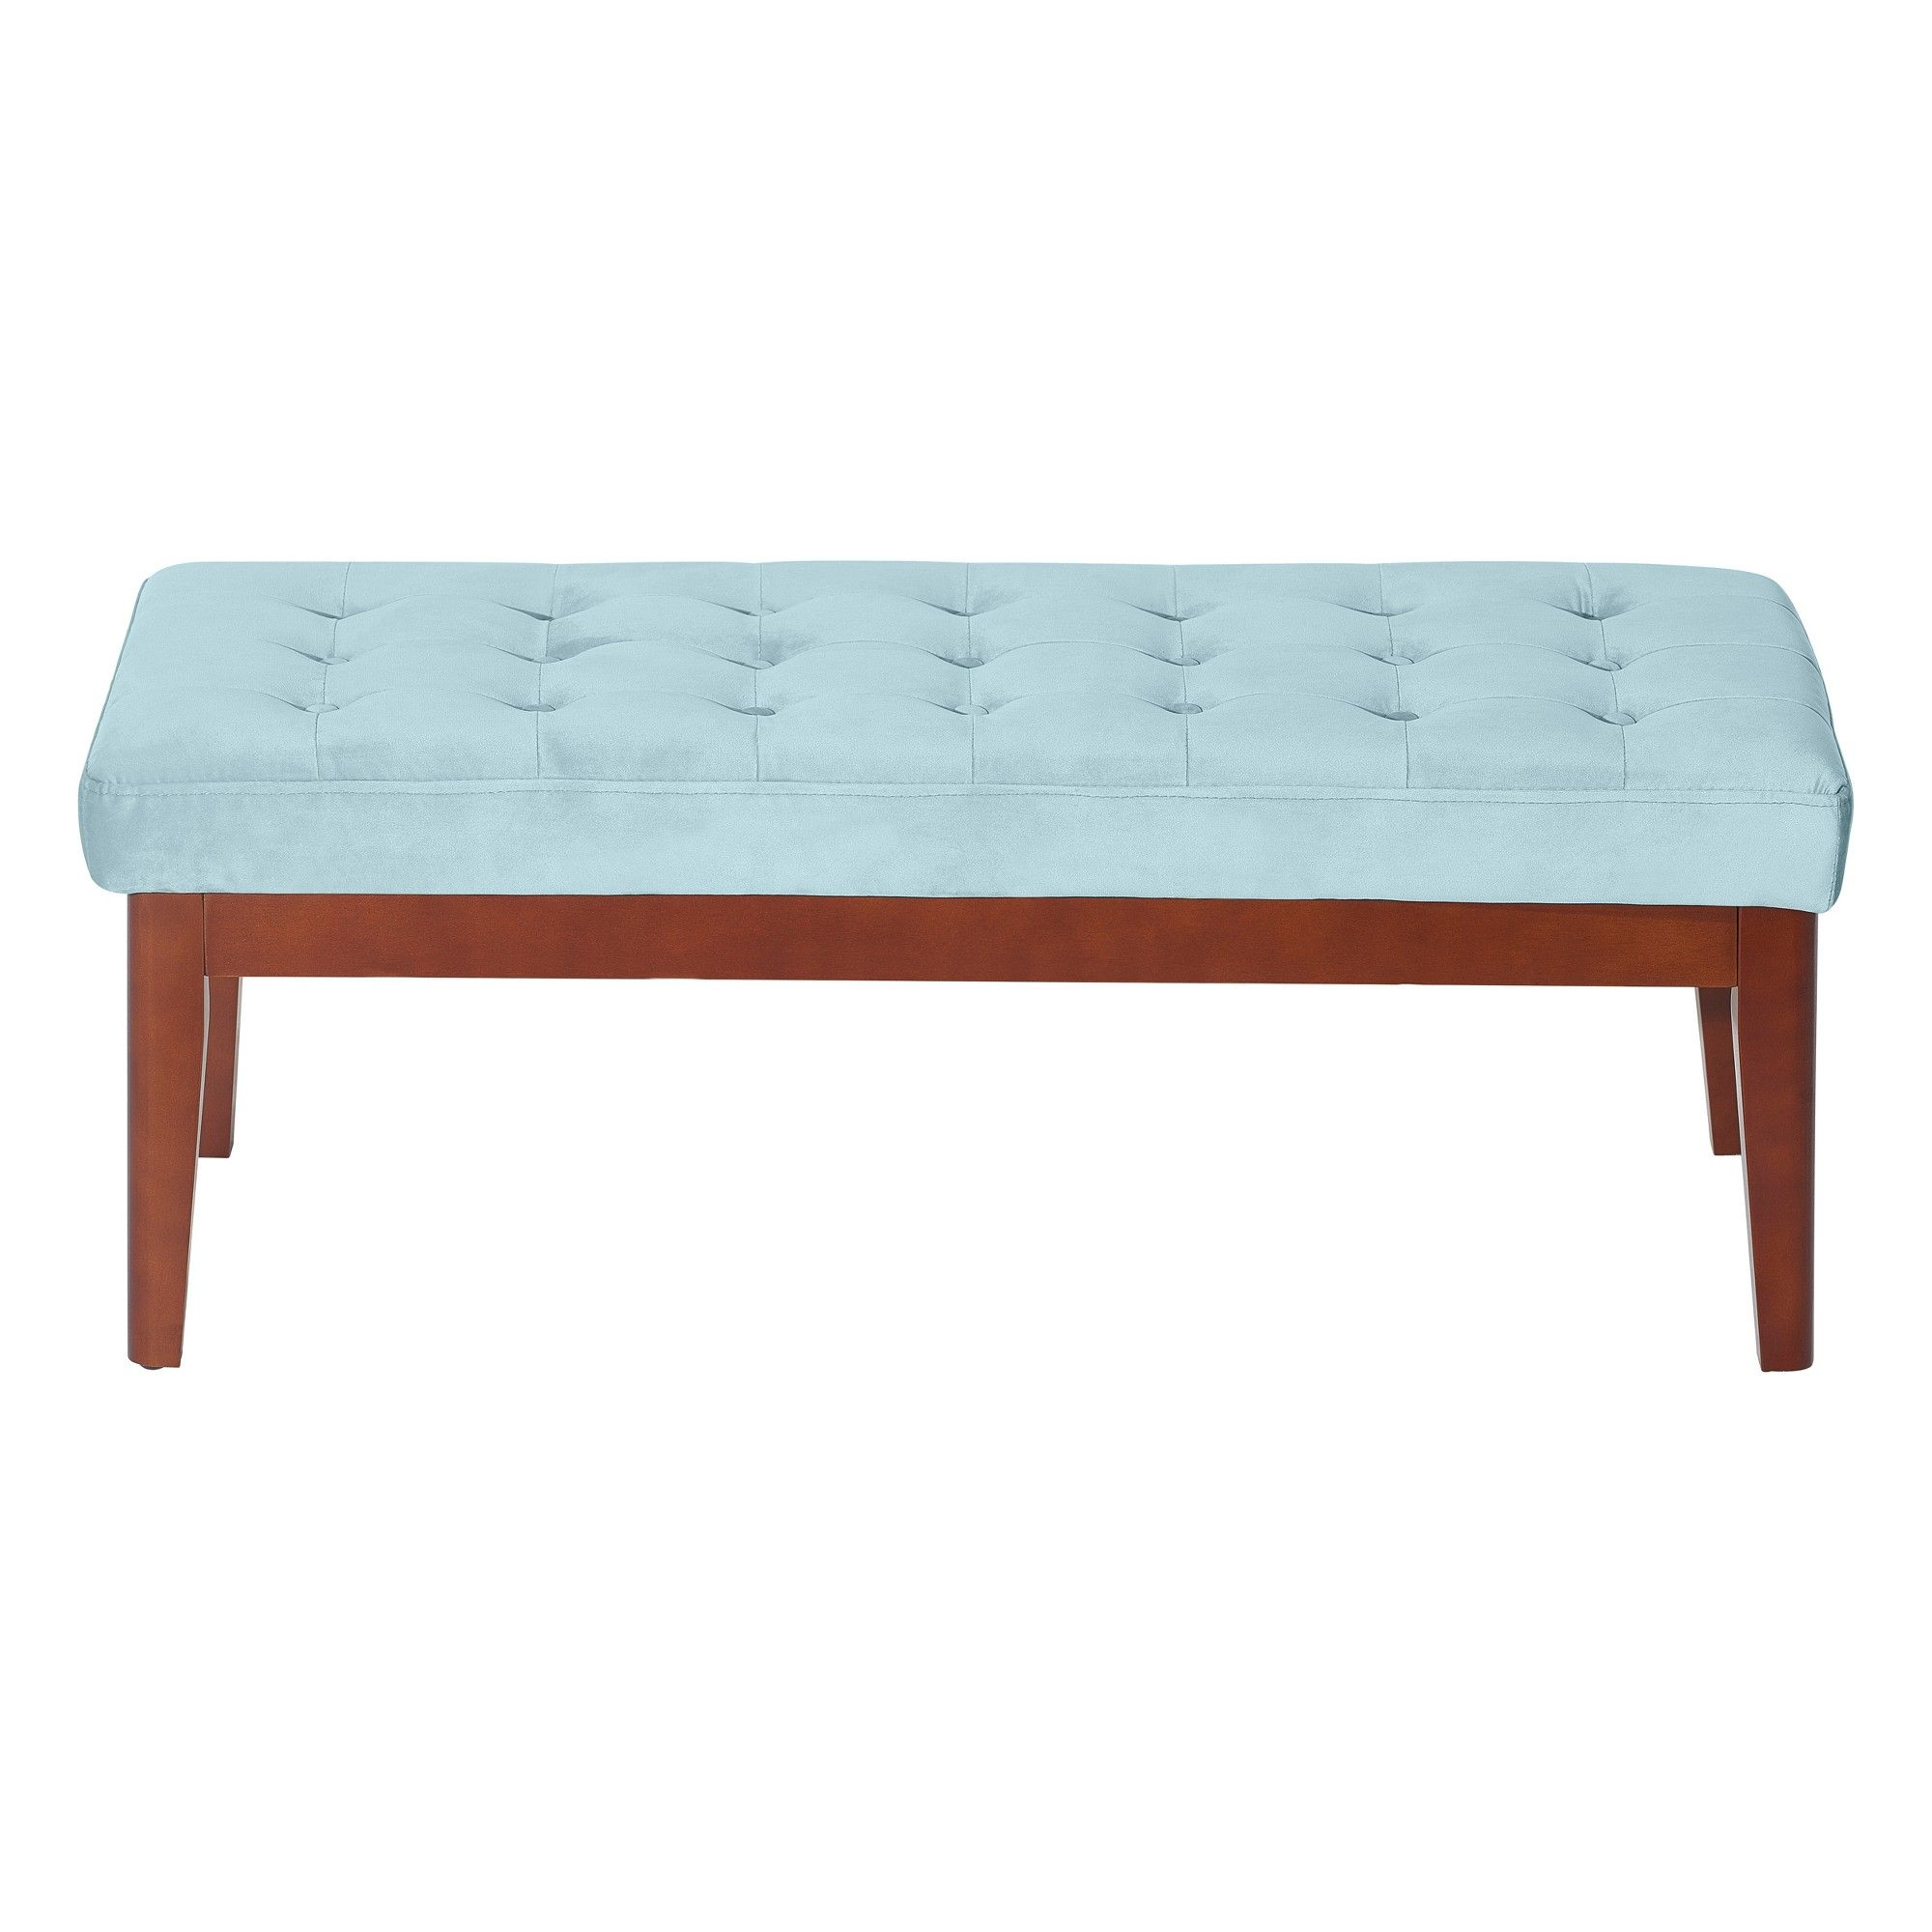 Stupendous Claire Tufted Upholstered Bench Seaglass Blue Velvet Adore Pdpeps Interior Chair Design Pdpepsorg